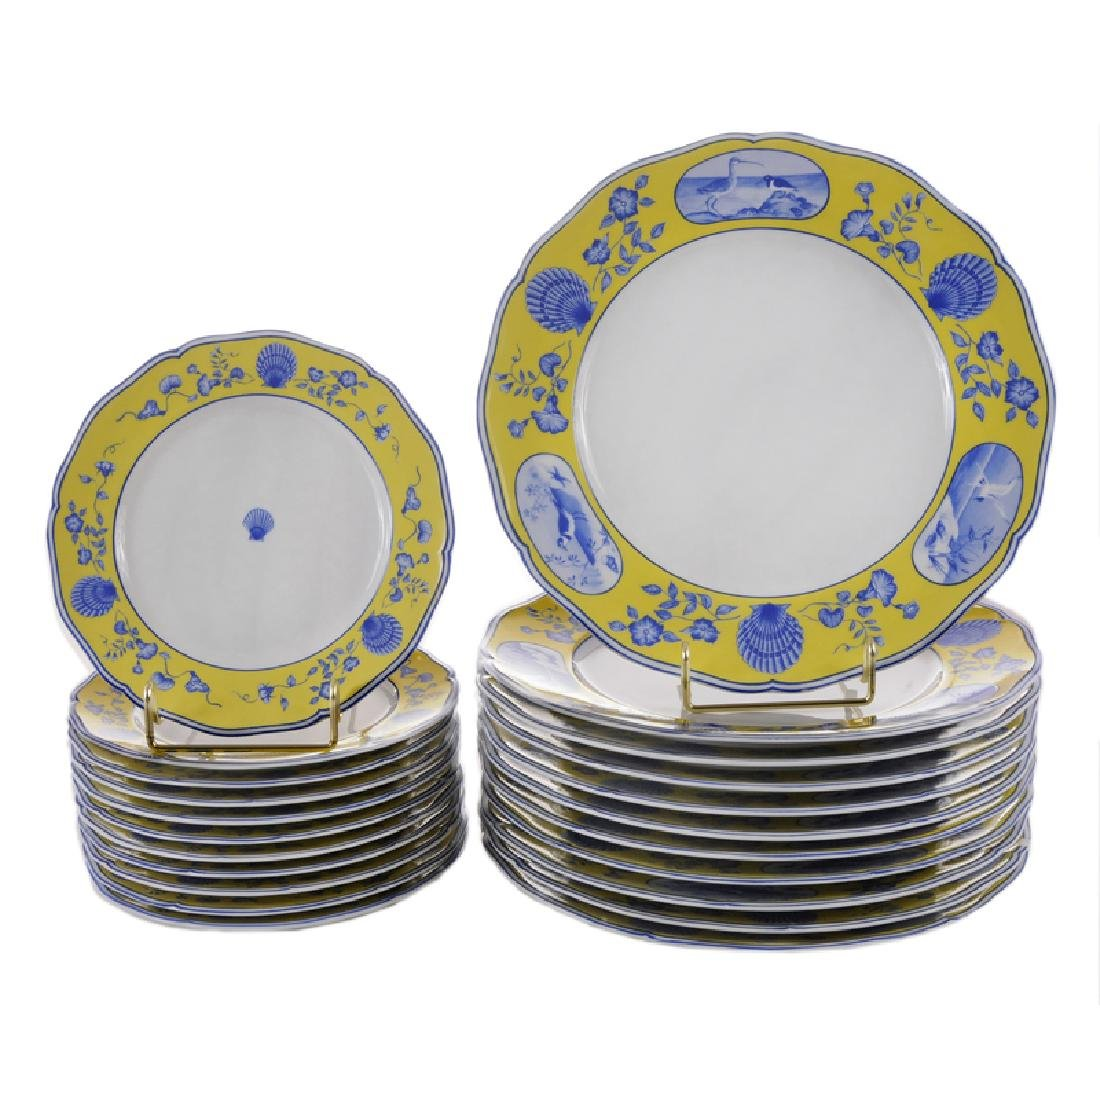 Twenty Two Pieces Costa Azzura Plates